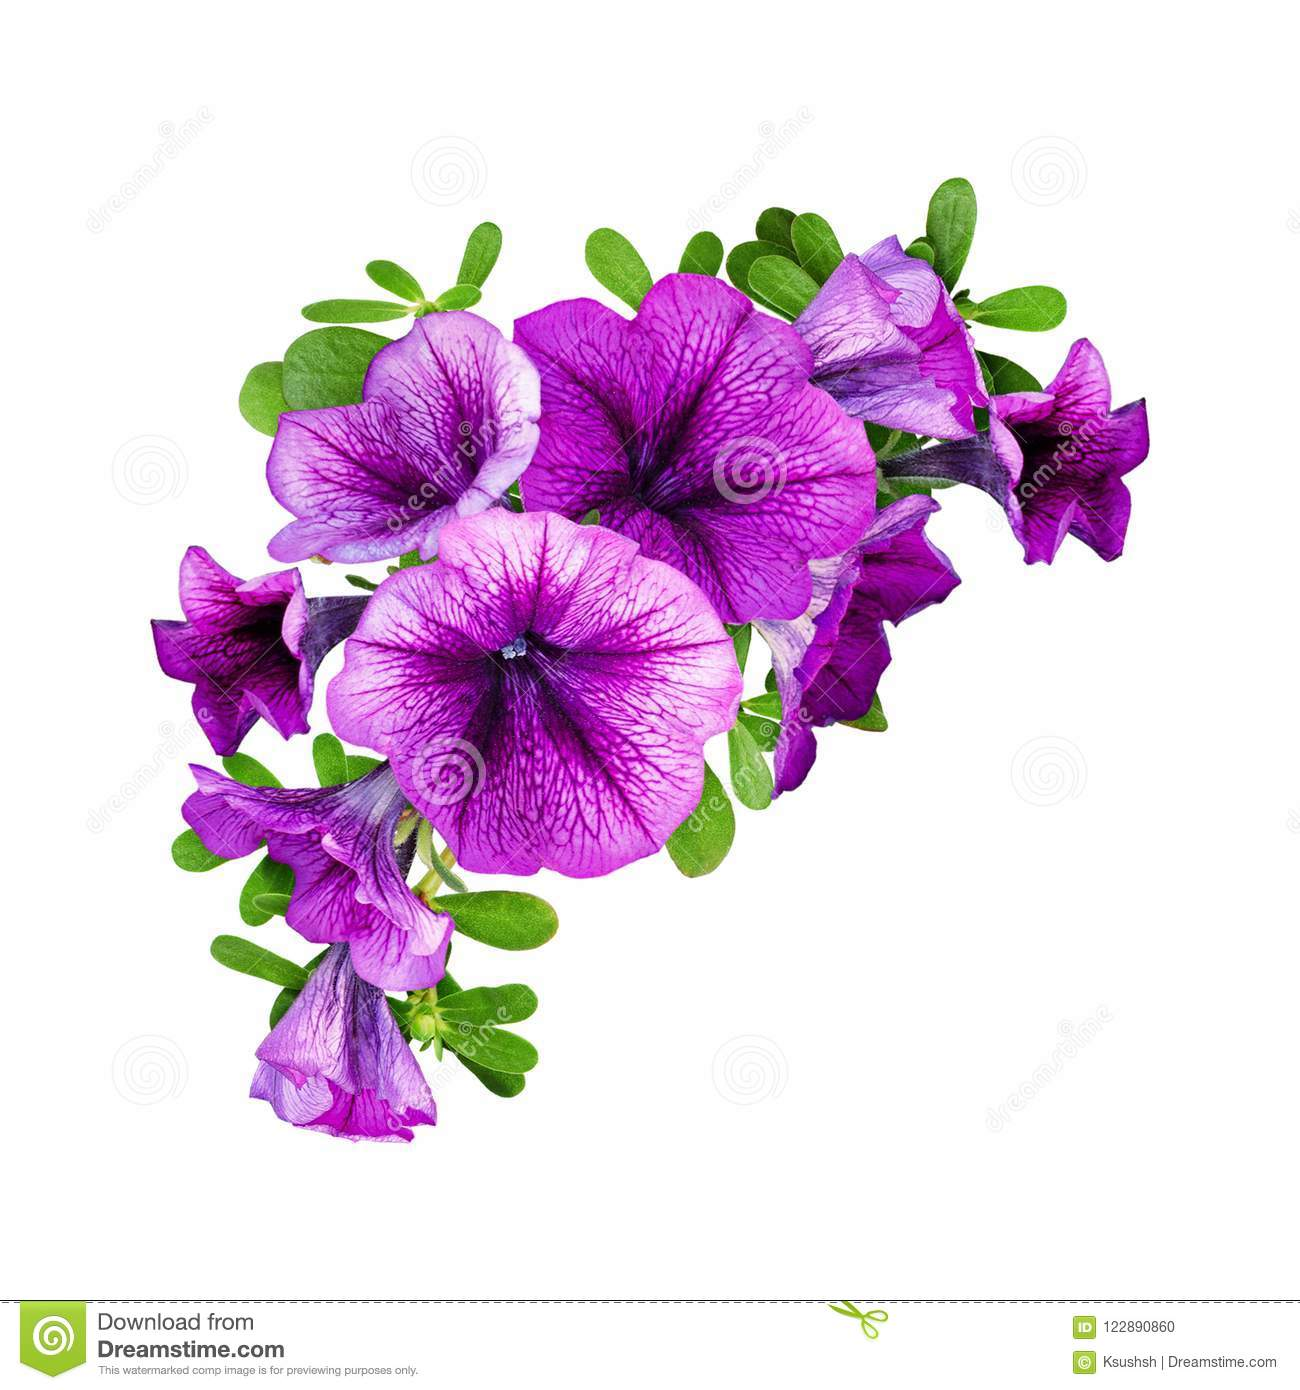 Purple petunia flowers in a floral corner composition